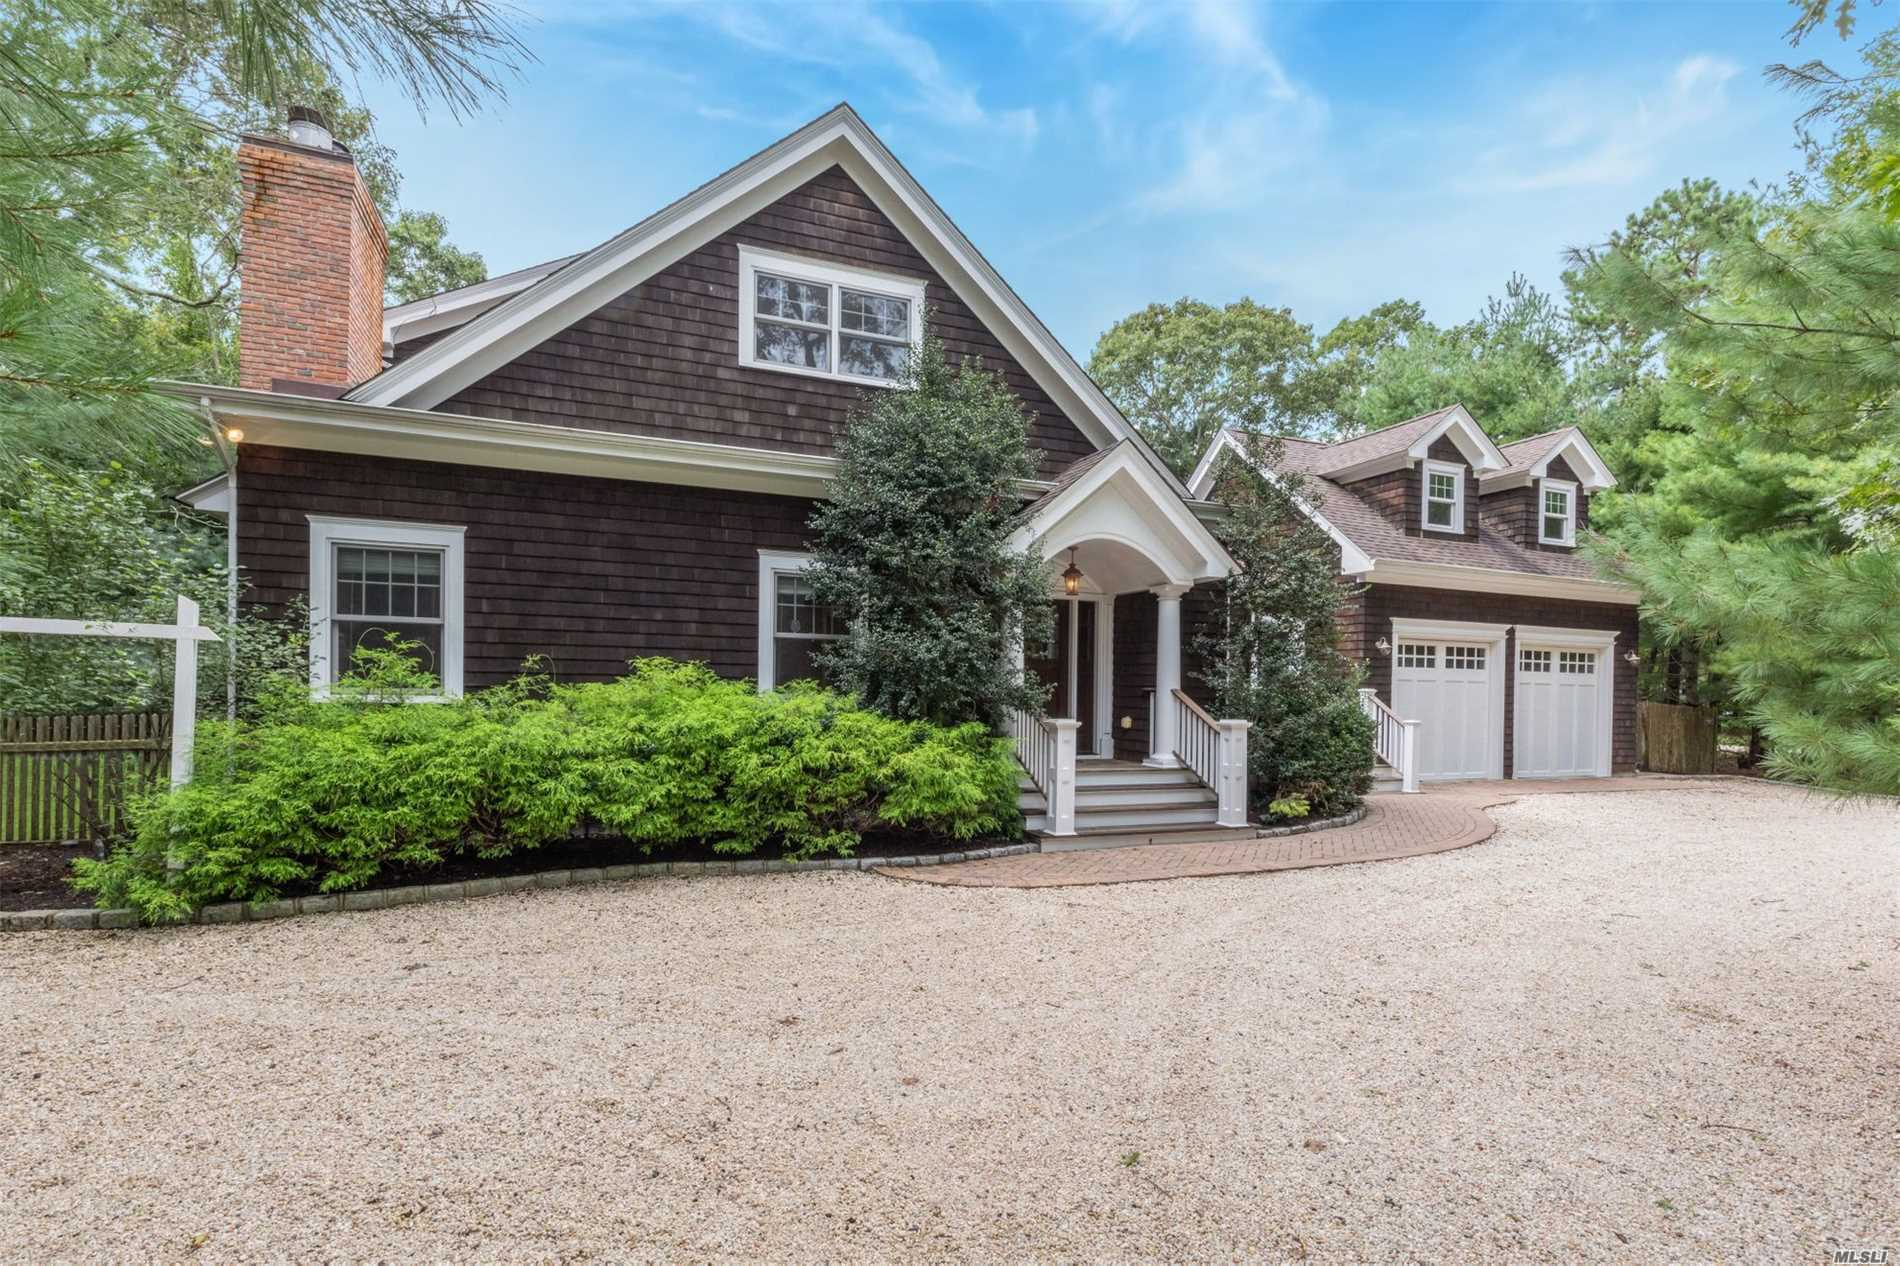 A Treasure To Be Found, 45 Old Depot Road, Quogue Is A Custom, Turn-Key Post Modern With Immaculate Attention To Detail, Expansive Entertaining Spaces And Flawless Design Characteristics. Additional Features Include Hardwood Floors, Custom Mill Work & Moldings, Wainscoting, A Mudroom With Separate Entrance, Two Car Garage And Full Basement, All Just A Short Distance From The Village Shops And Beaches.